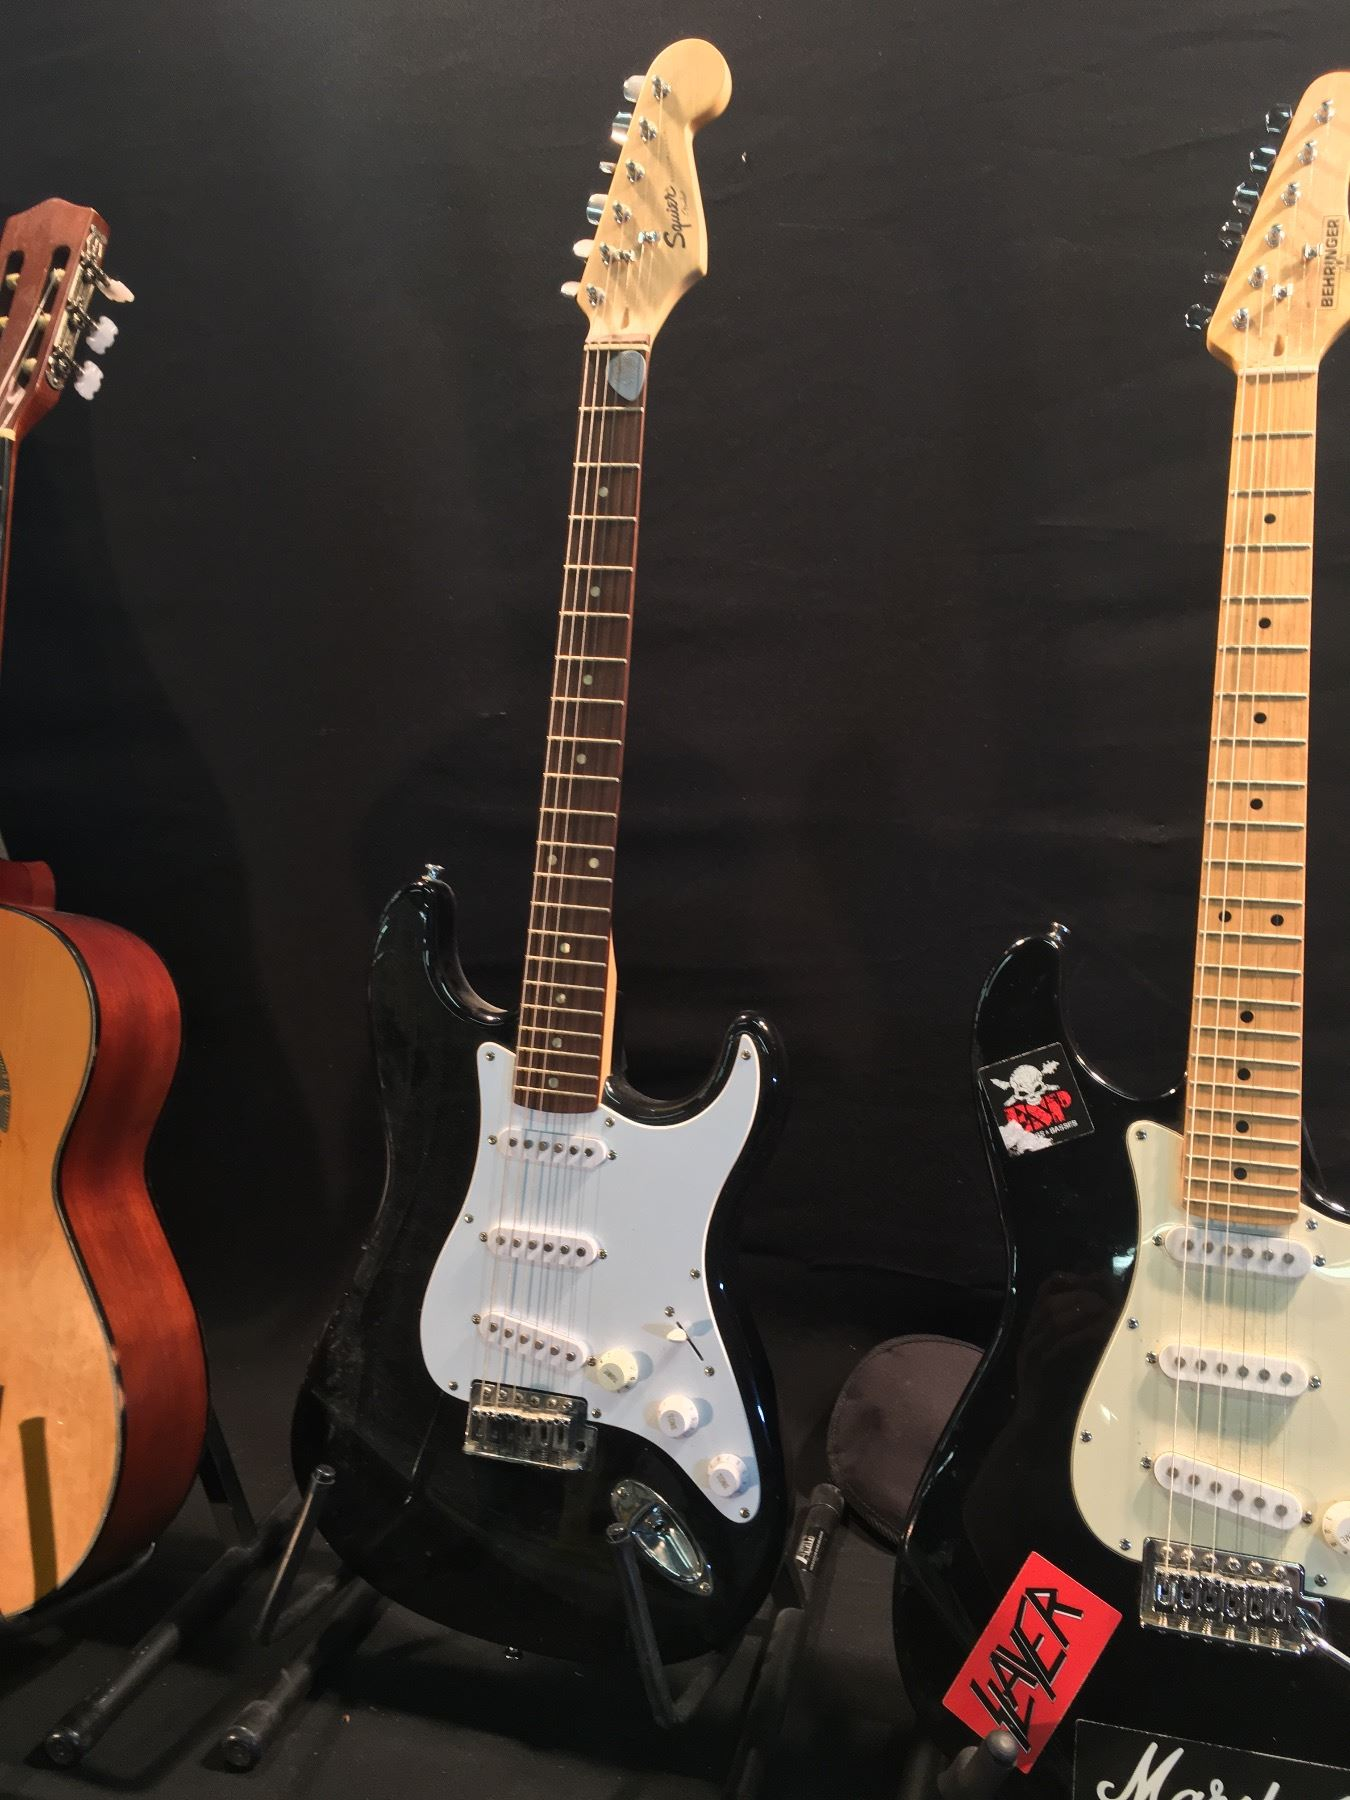 5a91720931a ... Image 3 : 3 GUITARS: SQUIER STRAT GUITAR, BEHRINGER STRAT STYLE GUITAR  WITH SOFT ...